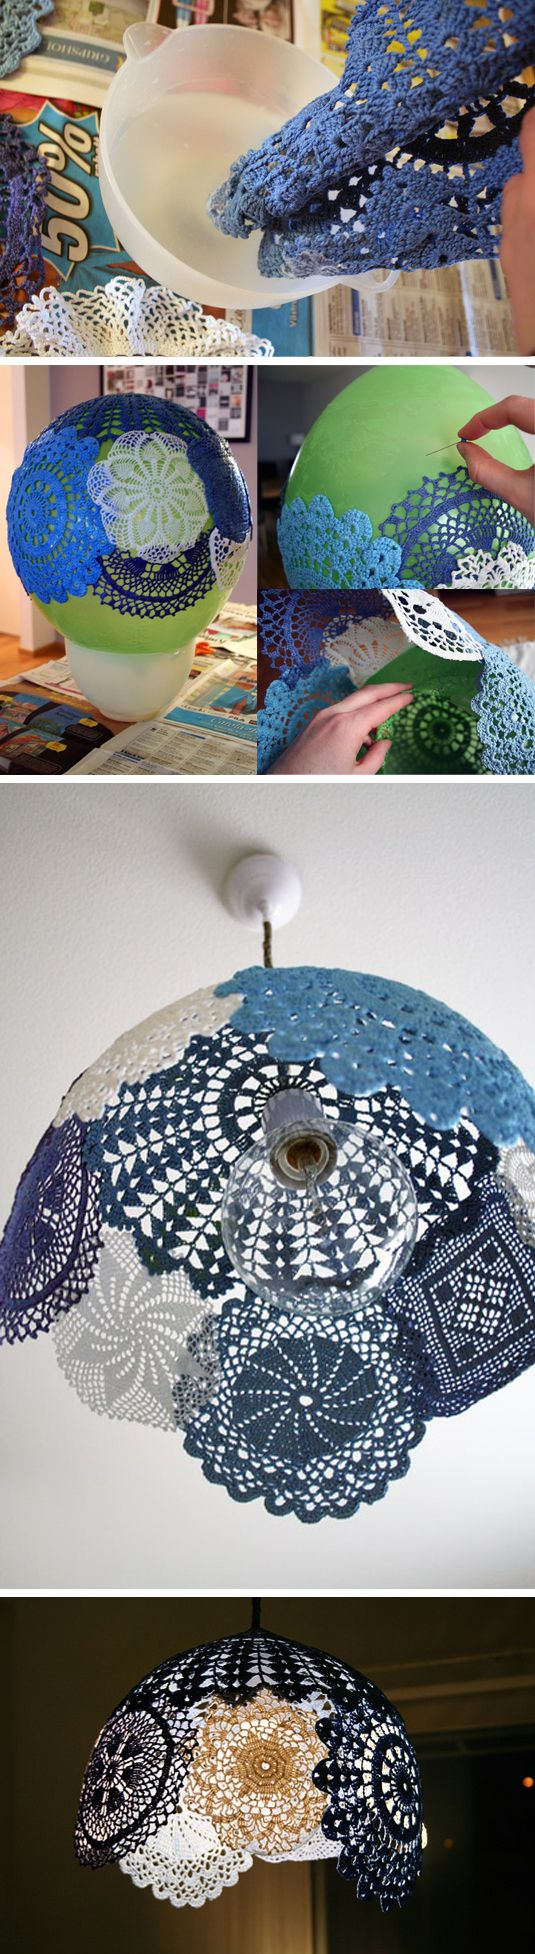 Pop a balloon, make a lamp.